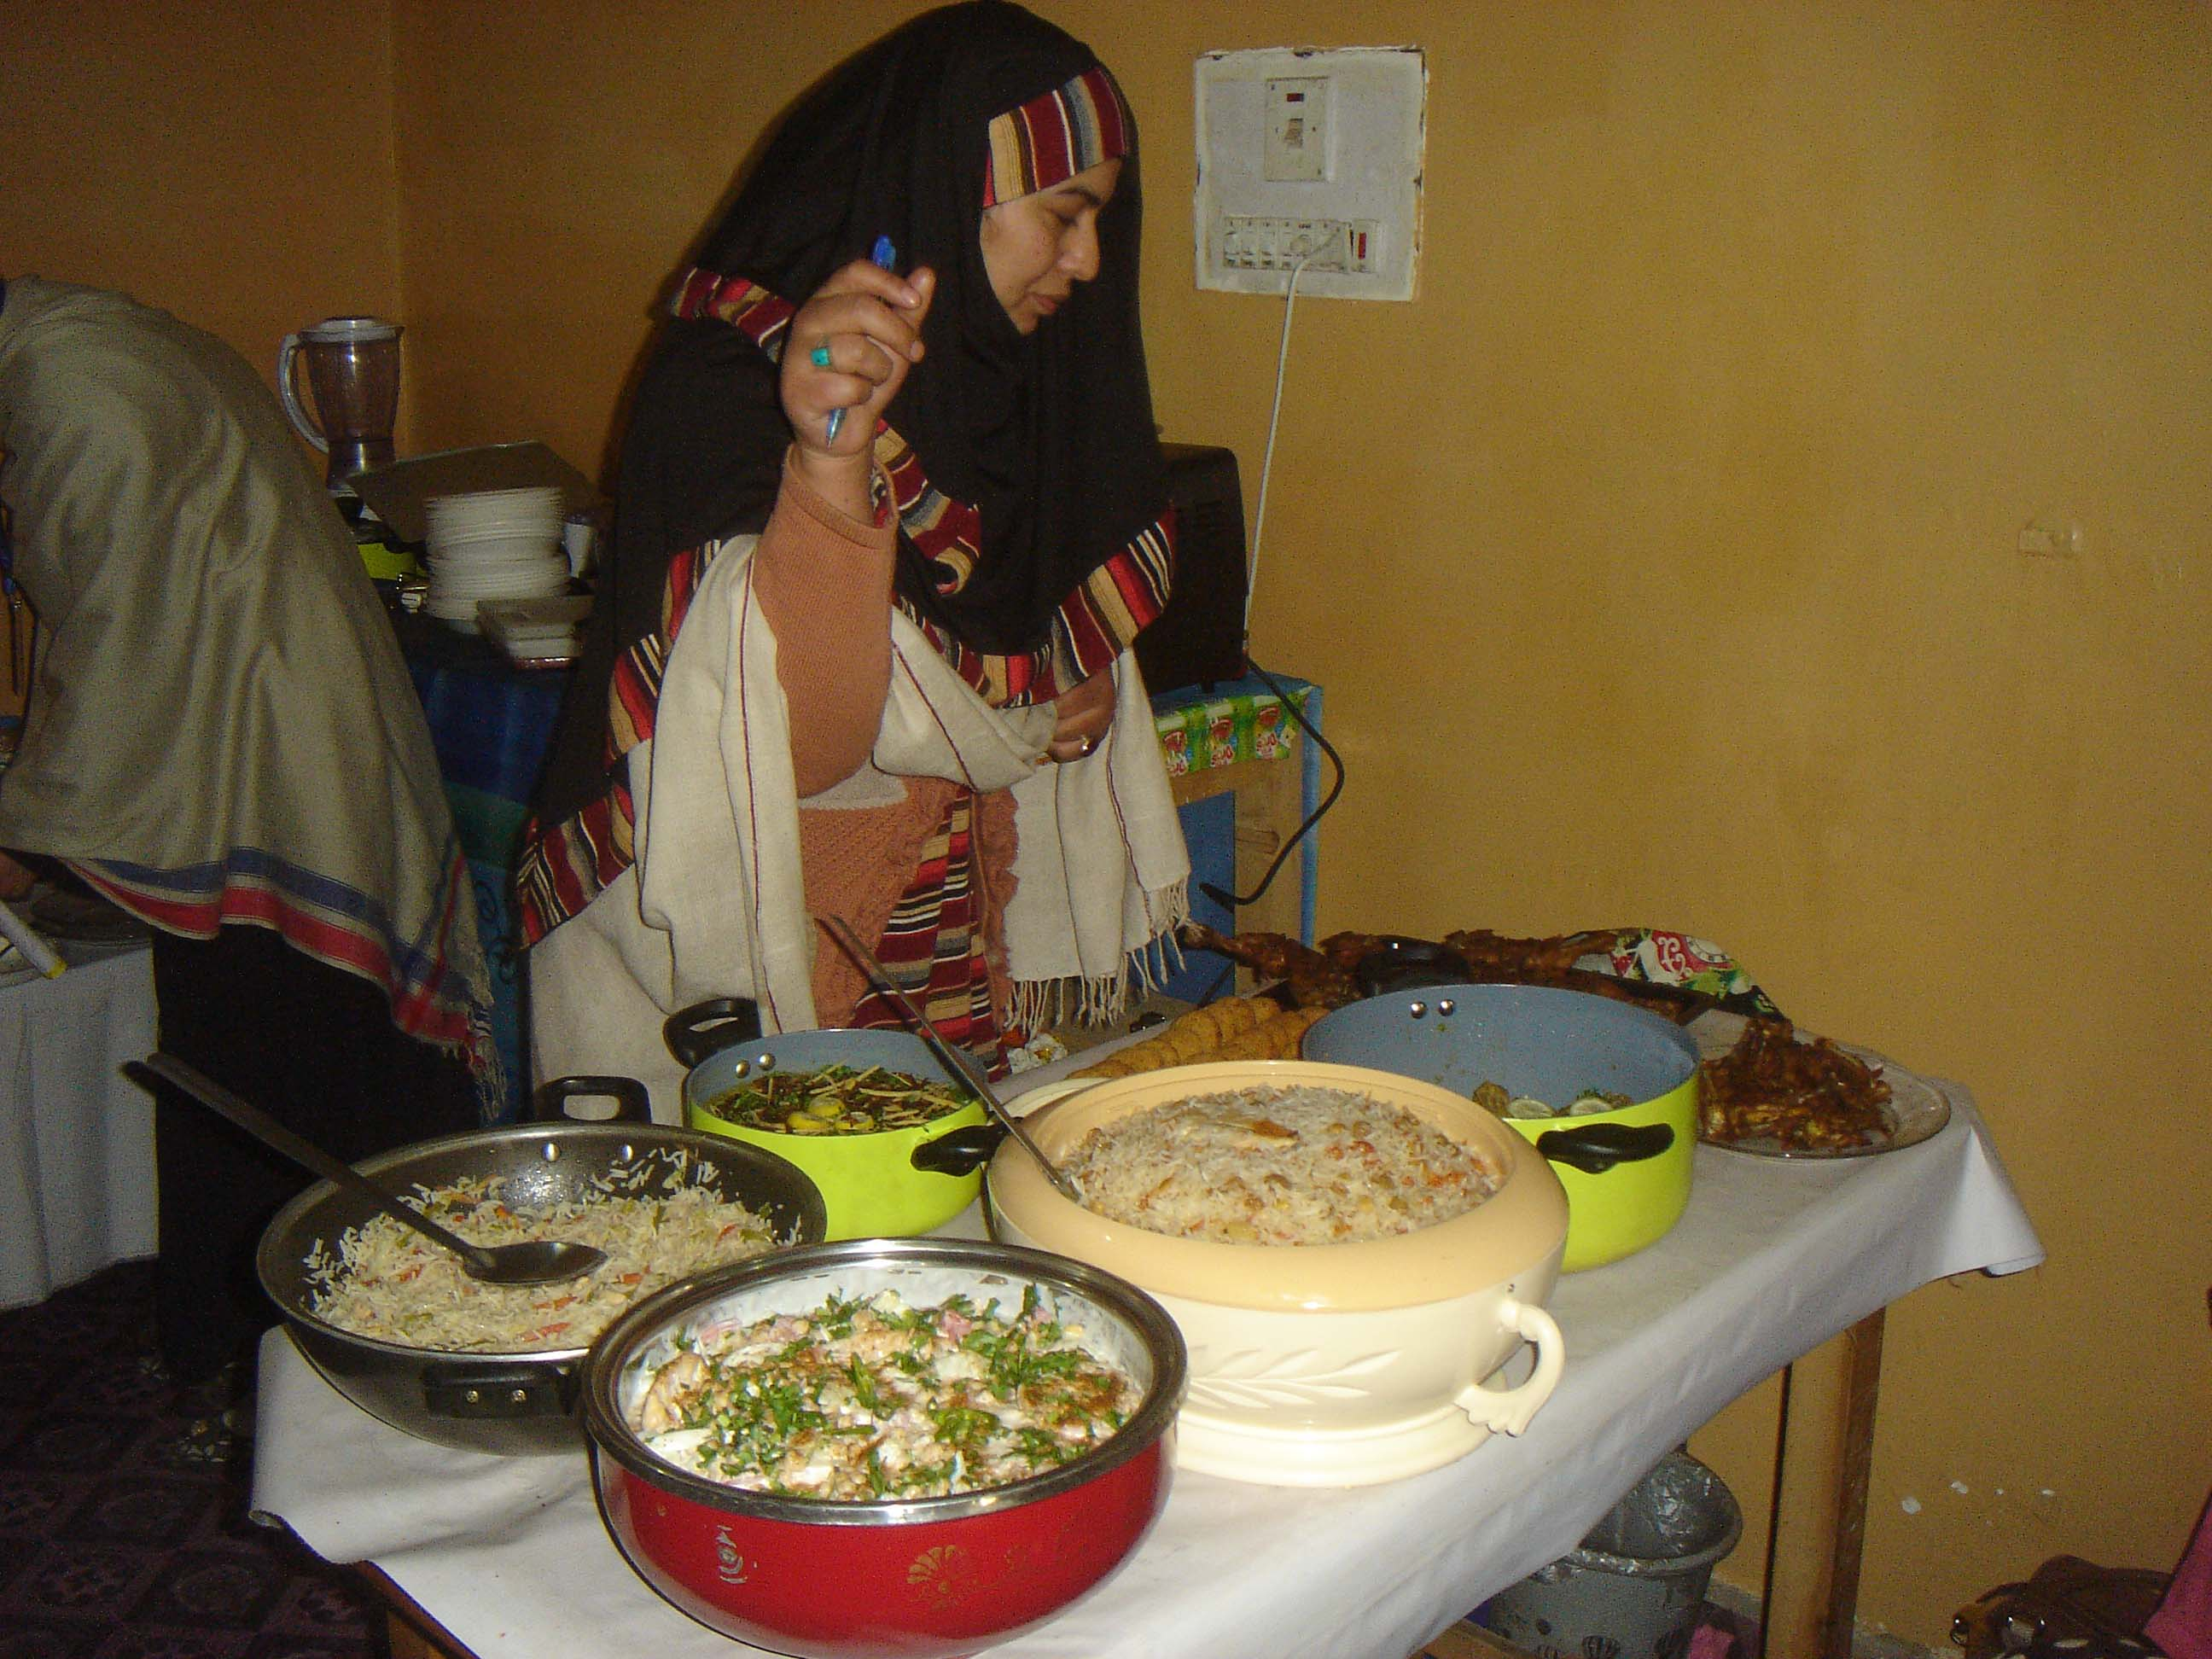 NCCB arranged cooking training for women folk